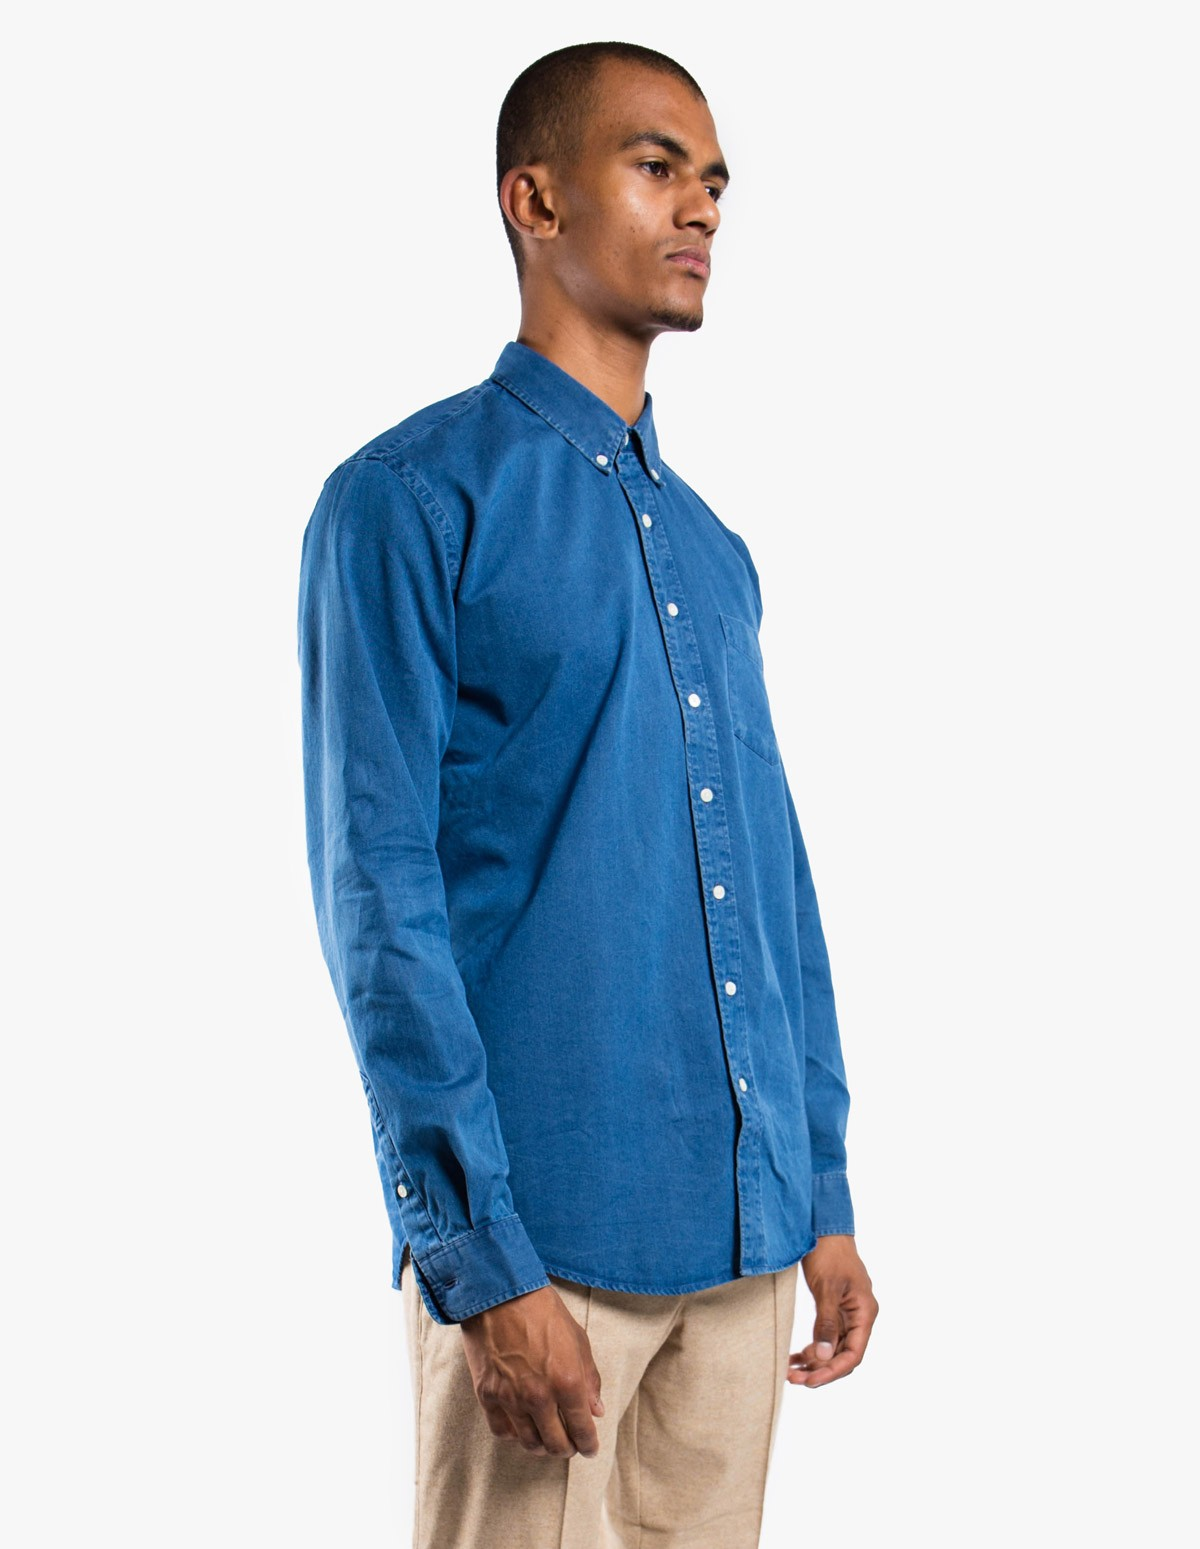 Schnayderman's Leisure Indigo Jeans Shirt in Mid Blue